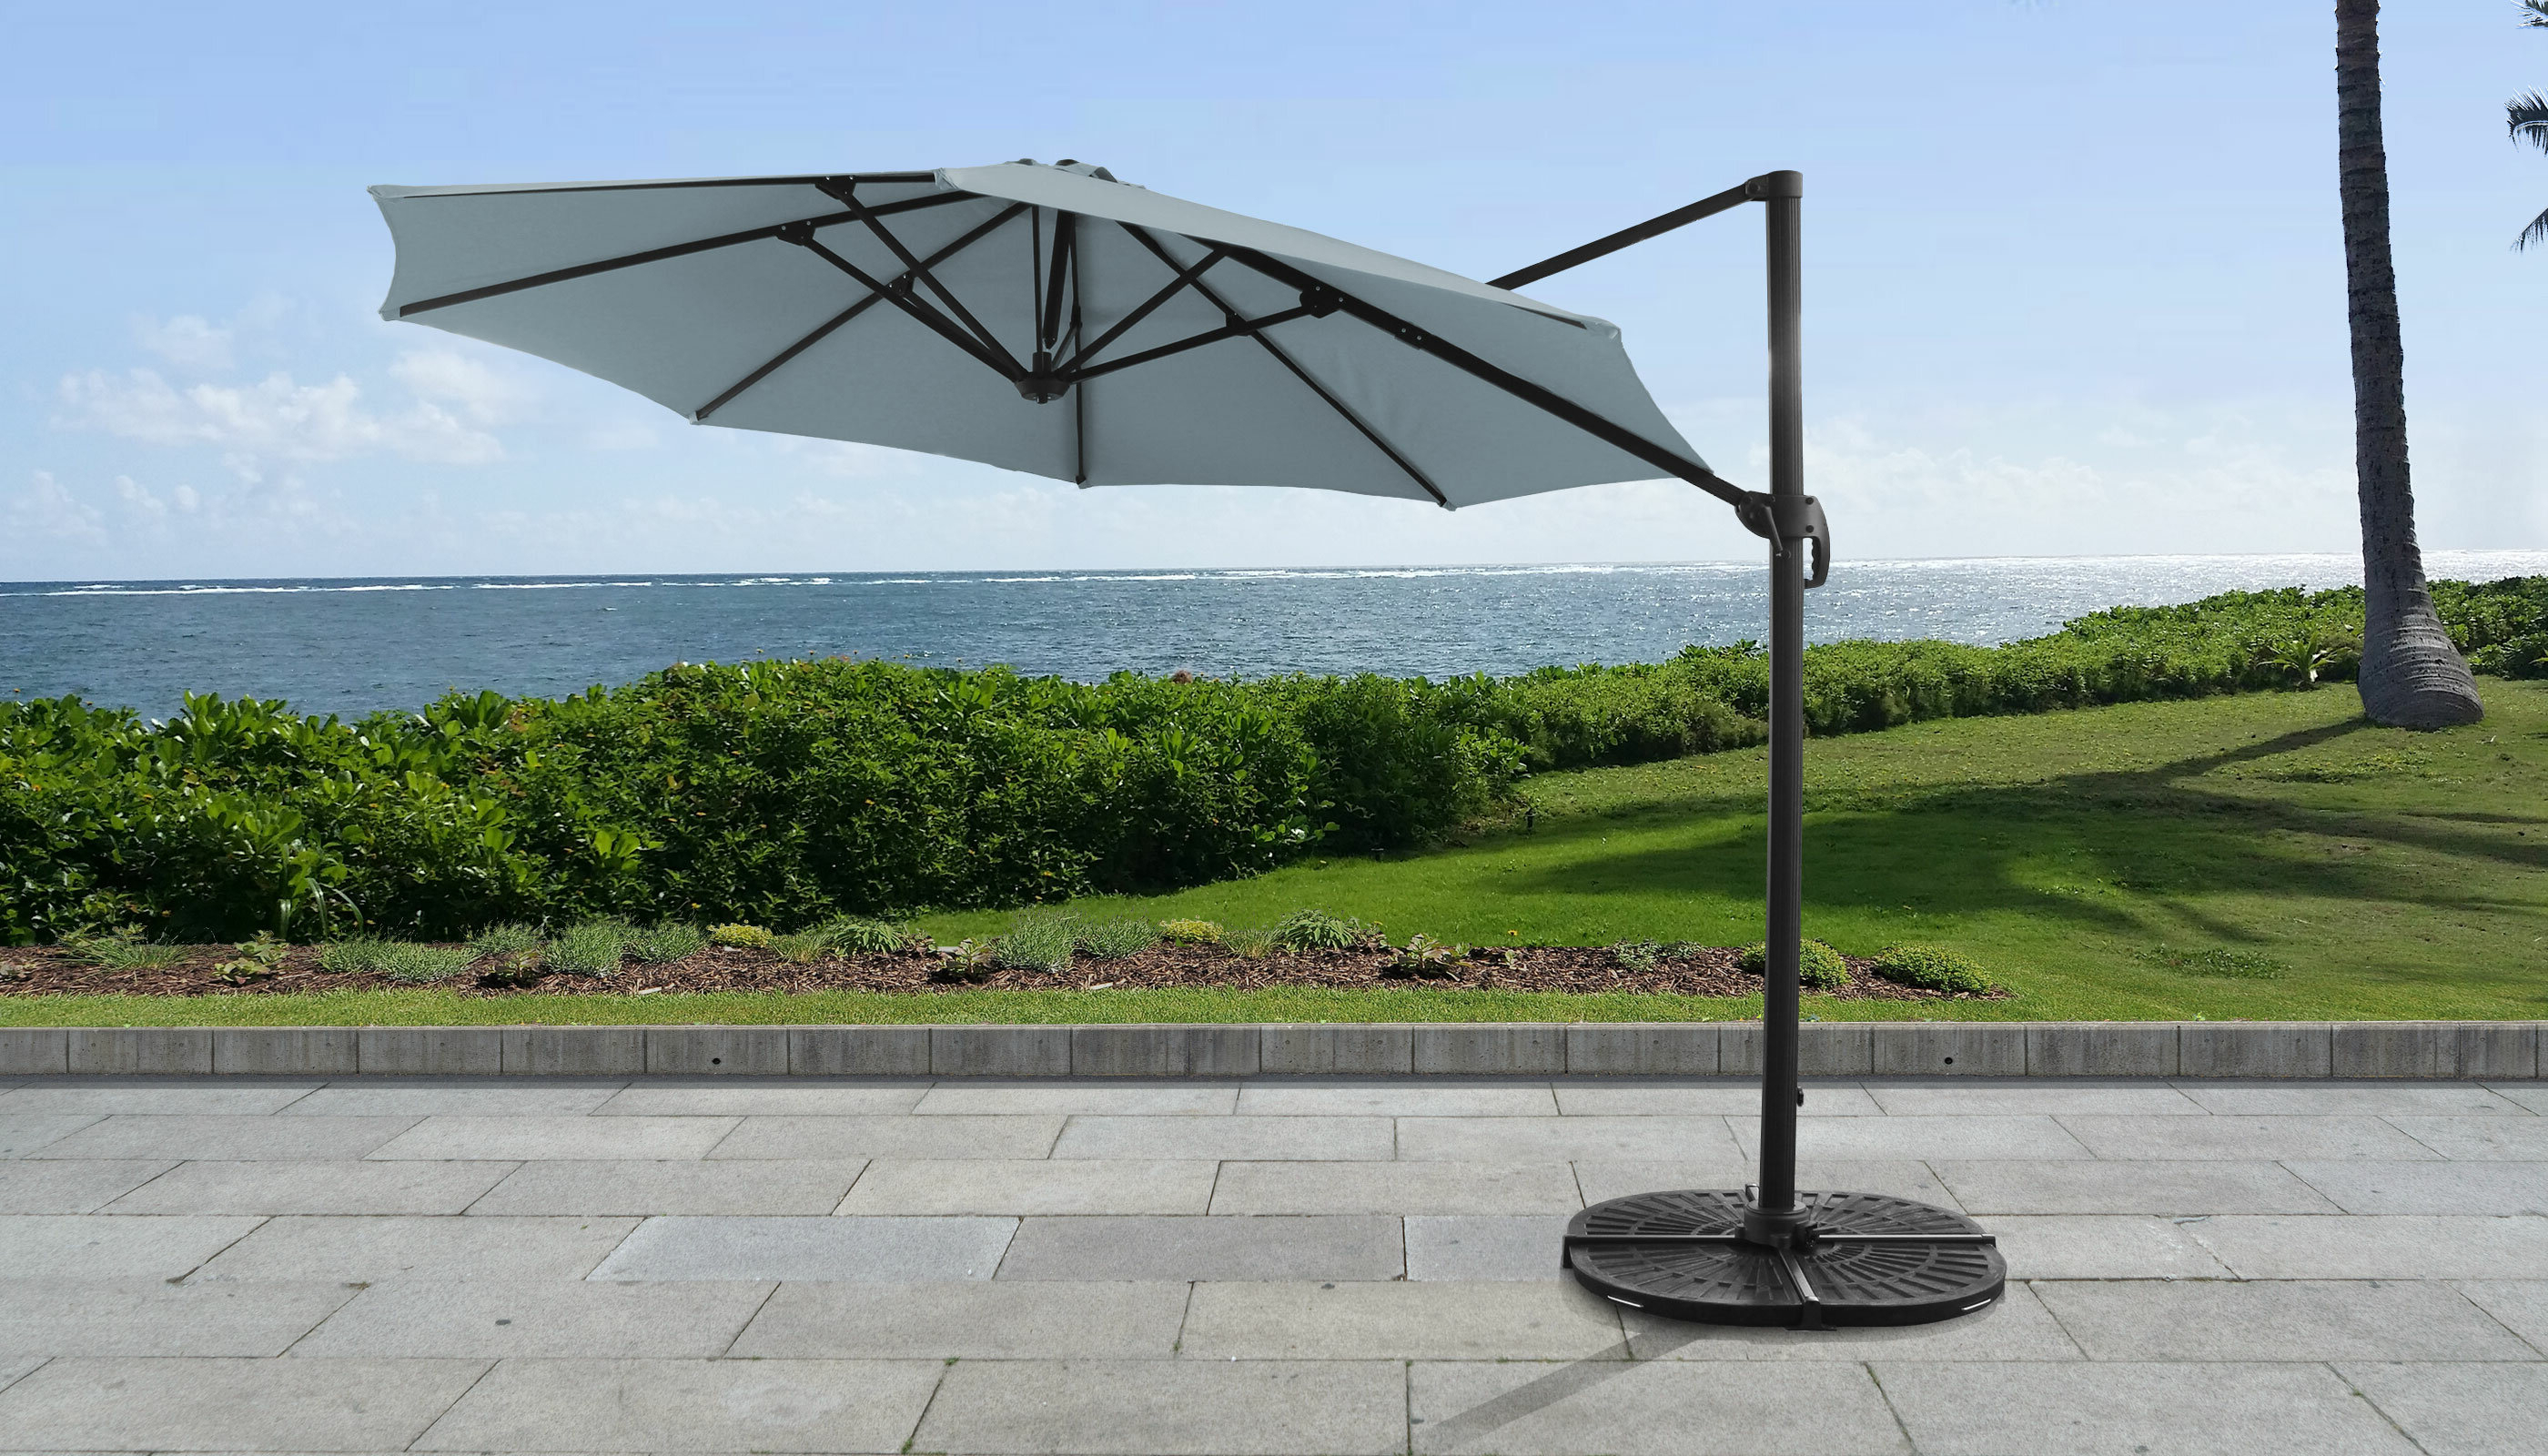 Widely Used Elaina 11' Cantilever Umbrella With Regard To Elaina Cantilever Umbrellas (View 19 of 20)